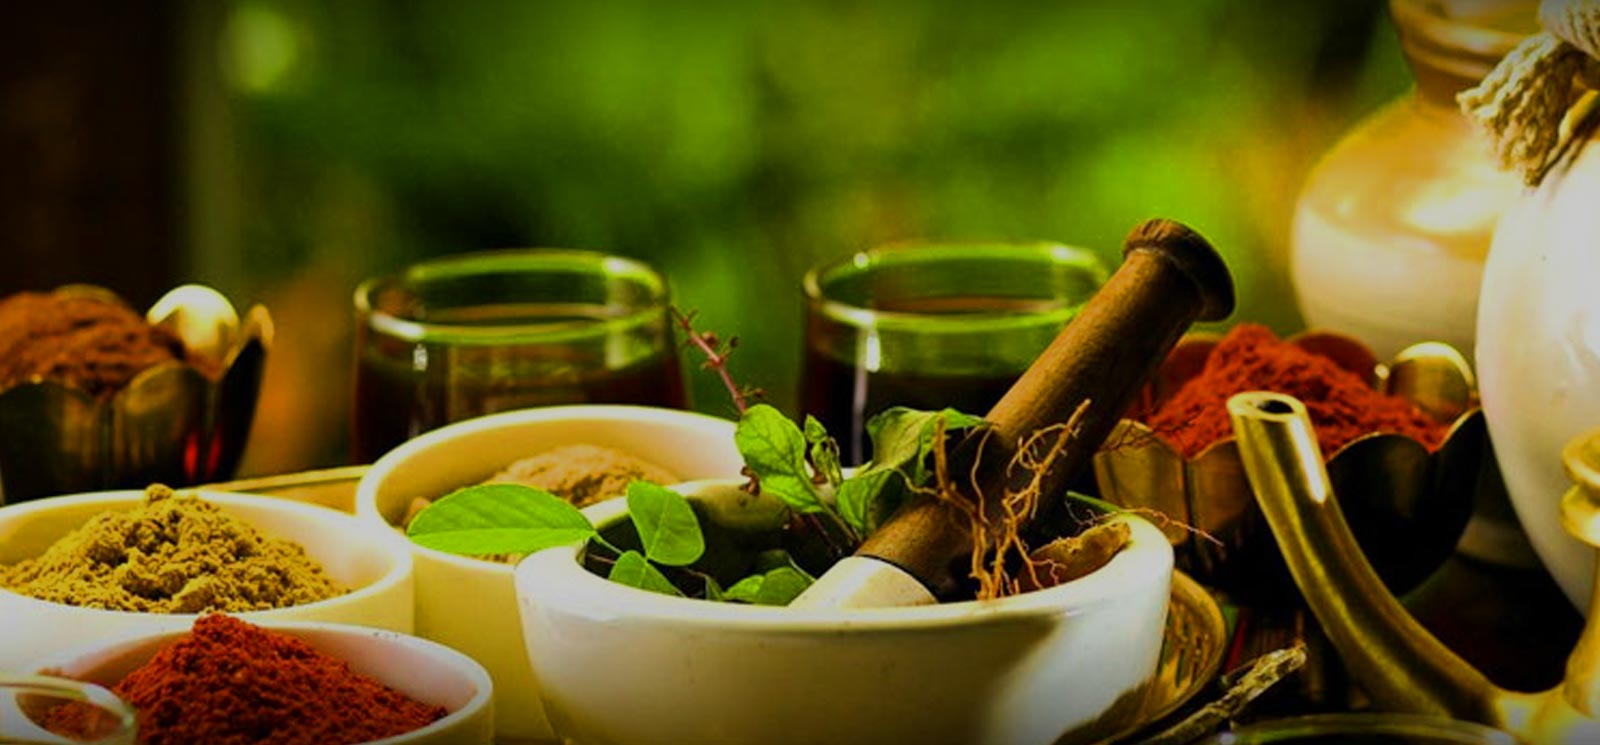 A La Carte Ayurveda treatments for the wellness of body and mind